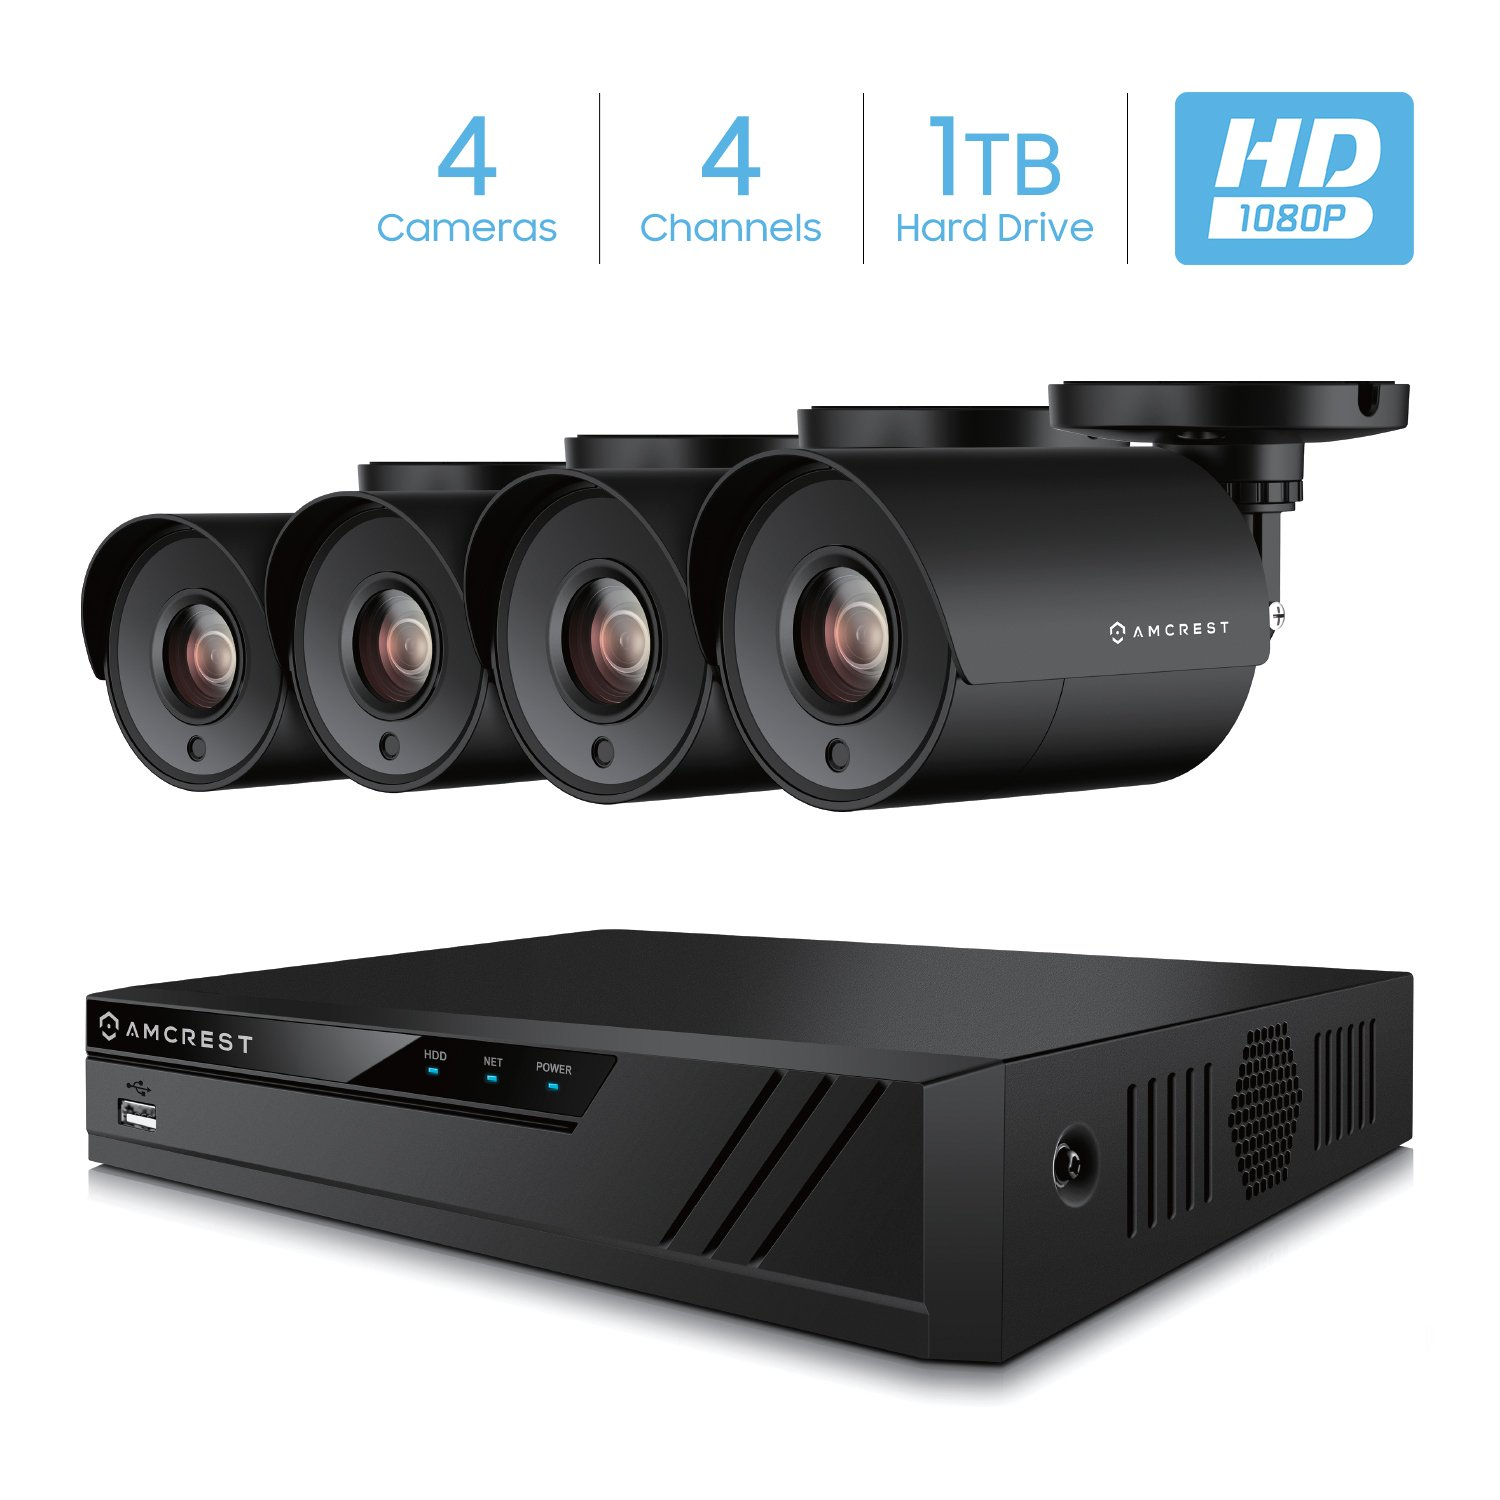 Amcrest 4CH Security Camera System Full 1080P HD-CVI Video DVR with 4X 1920TVL 2MP 1080P Indoor Outdoor Weatherproof IP67 Cameras, 1TB Hard Drive, 98ft Night Vision, for Home Business (AMDV20M4-4B-B) by Amcrest